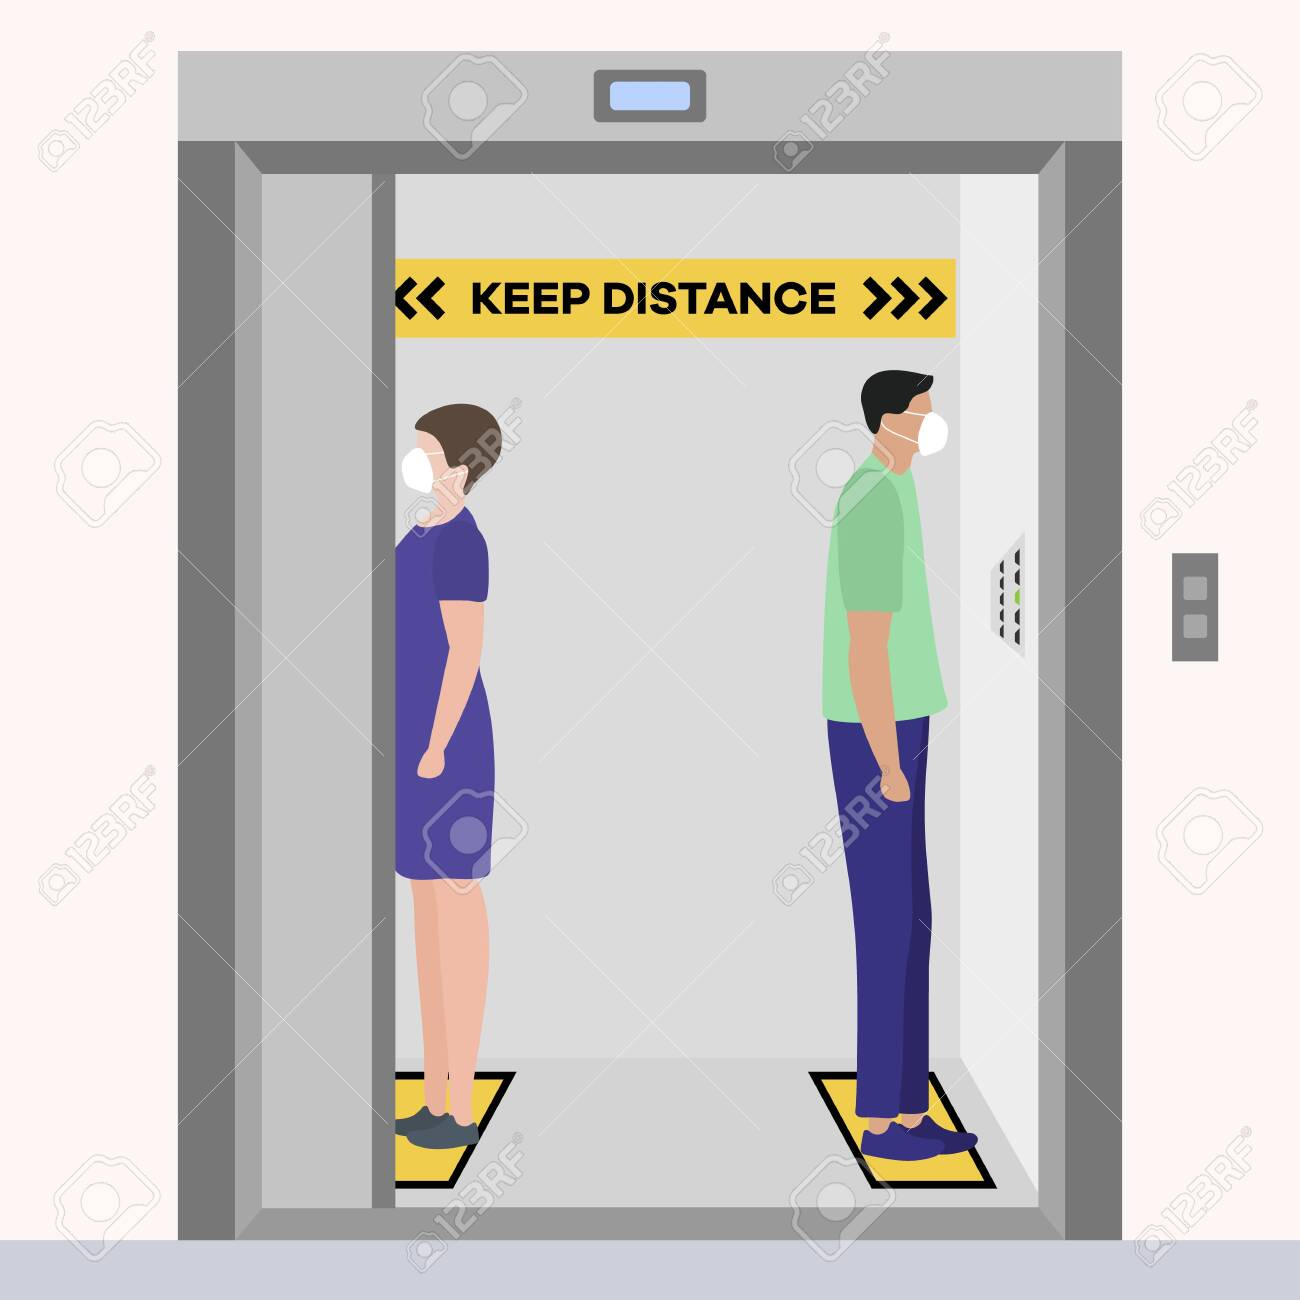 Vector illustration Keep distance. Social distancing. coronavirus COVID-19 Quarantine. Pandemic virus Reducing risk of infection, disease prevention measures. People in masks in elevator - 145251395